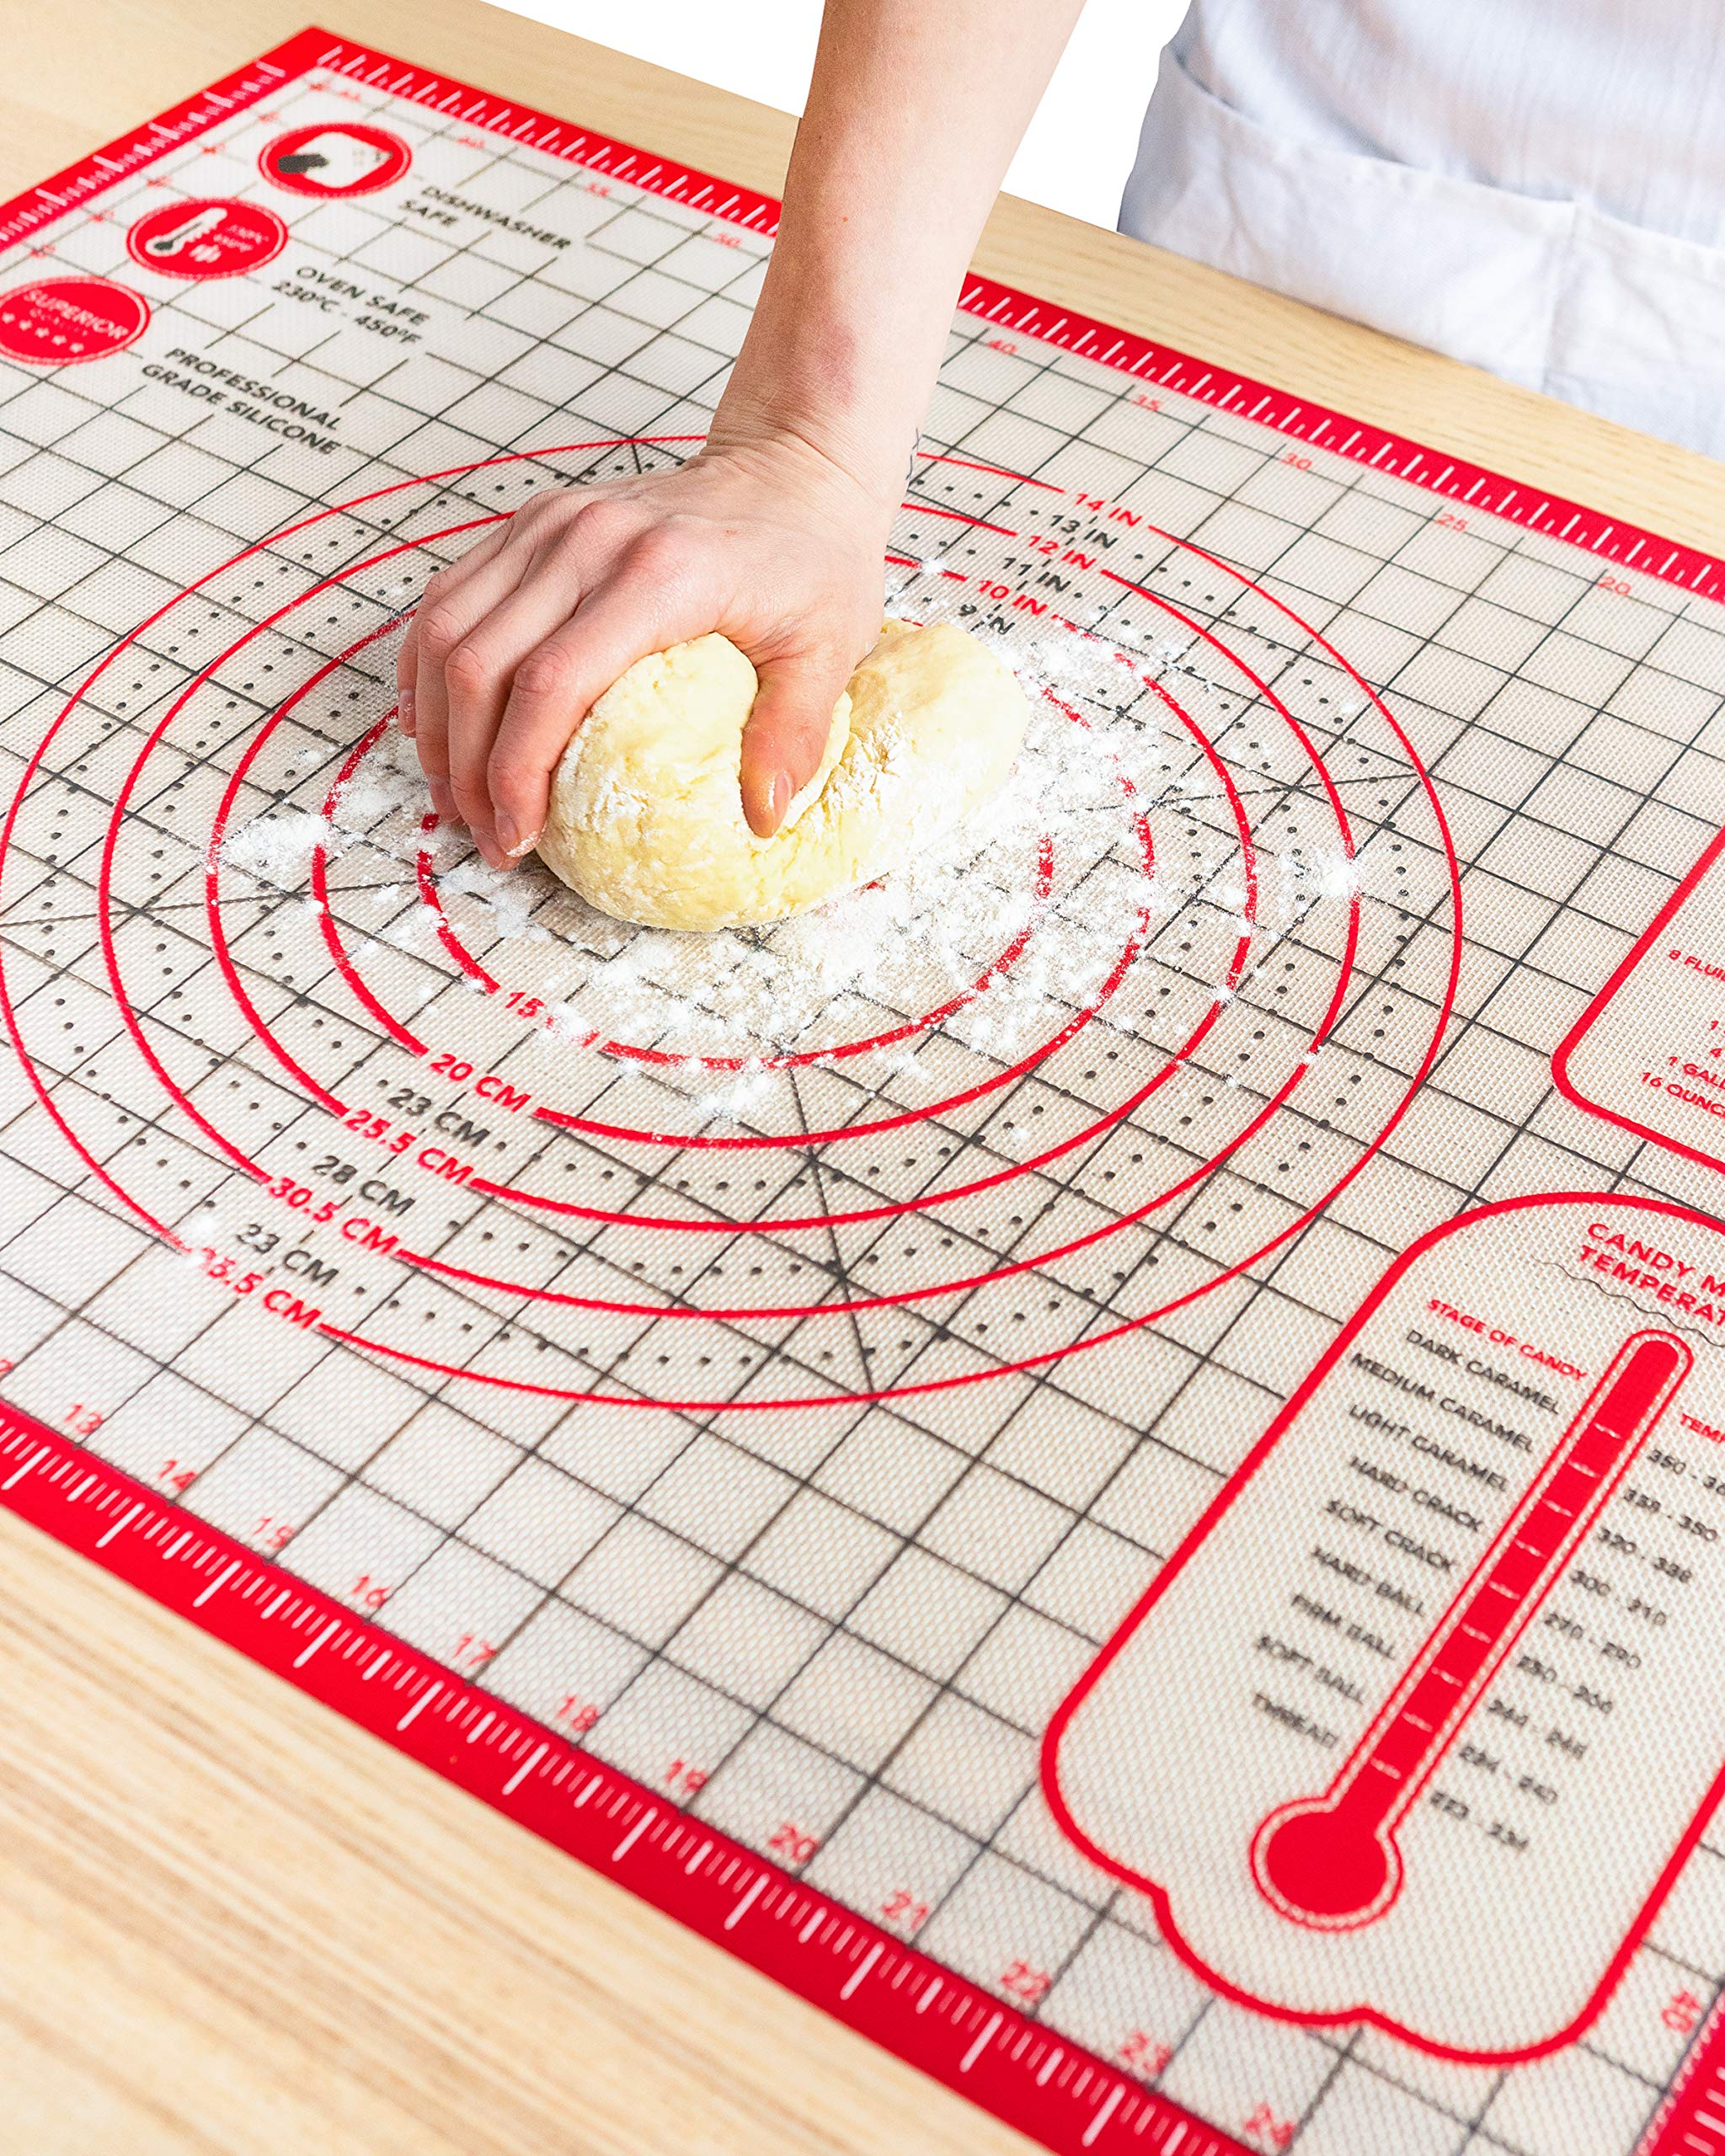 Pastry Mat Silicone Non Slip - Extra Large Thick Non Stick Silicone Baking Mat For Rolling Dough Pie Crust Fondant Pizza and Cookies - Heavy Duty Easy Clean Kneading Mat With Measurements - 20'' x 28'' by Kitzini (Image #8)